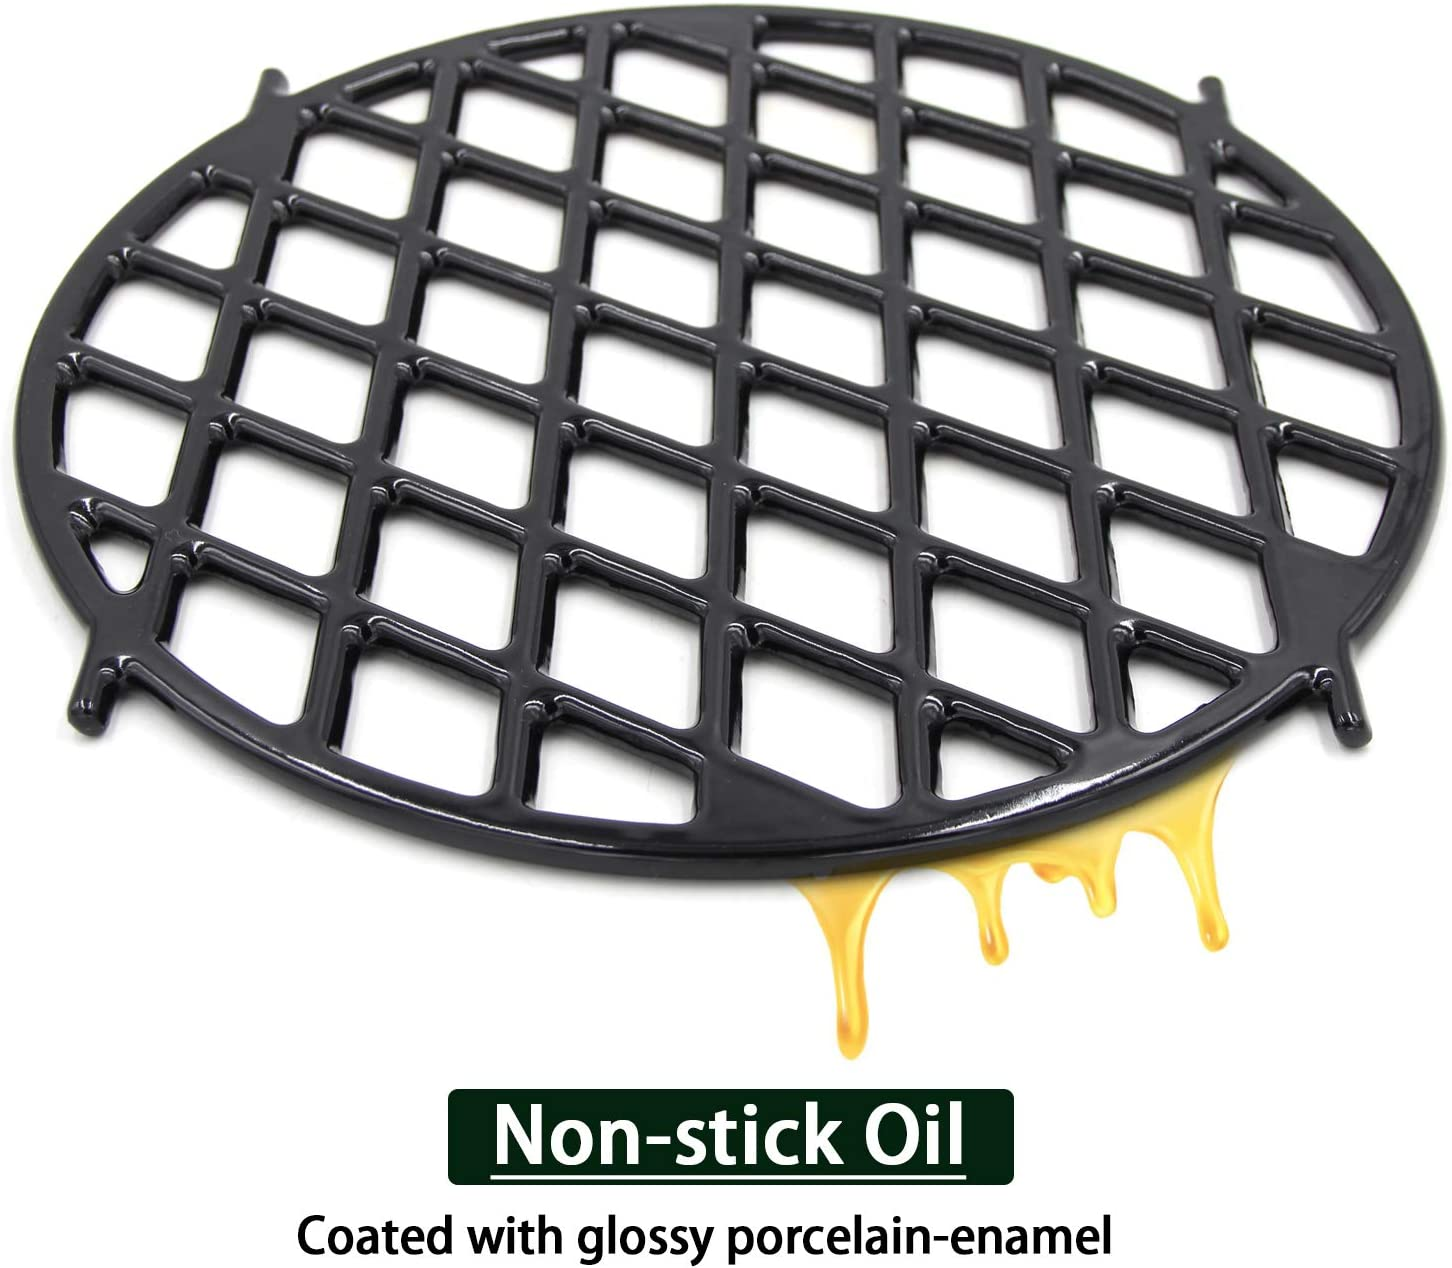 """VICOOL 5 Gourmet BBQ System Sear Grate for 5.5"""" Weber Charcoal  Grills,5 Inches Porcelain-Enameled Cast-Iron Round Cooking Grid Grill  Grate"""